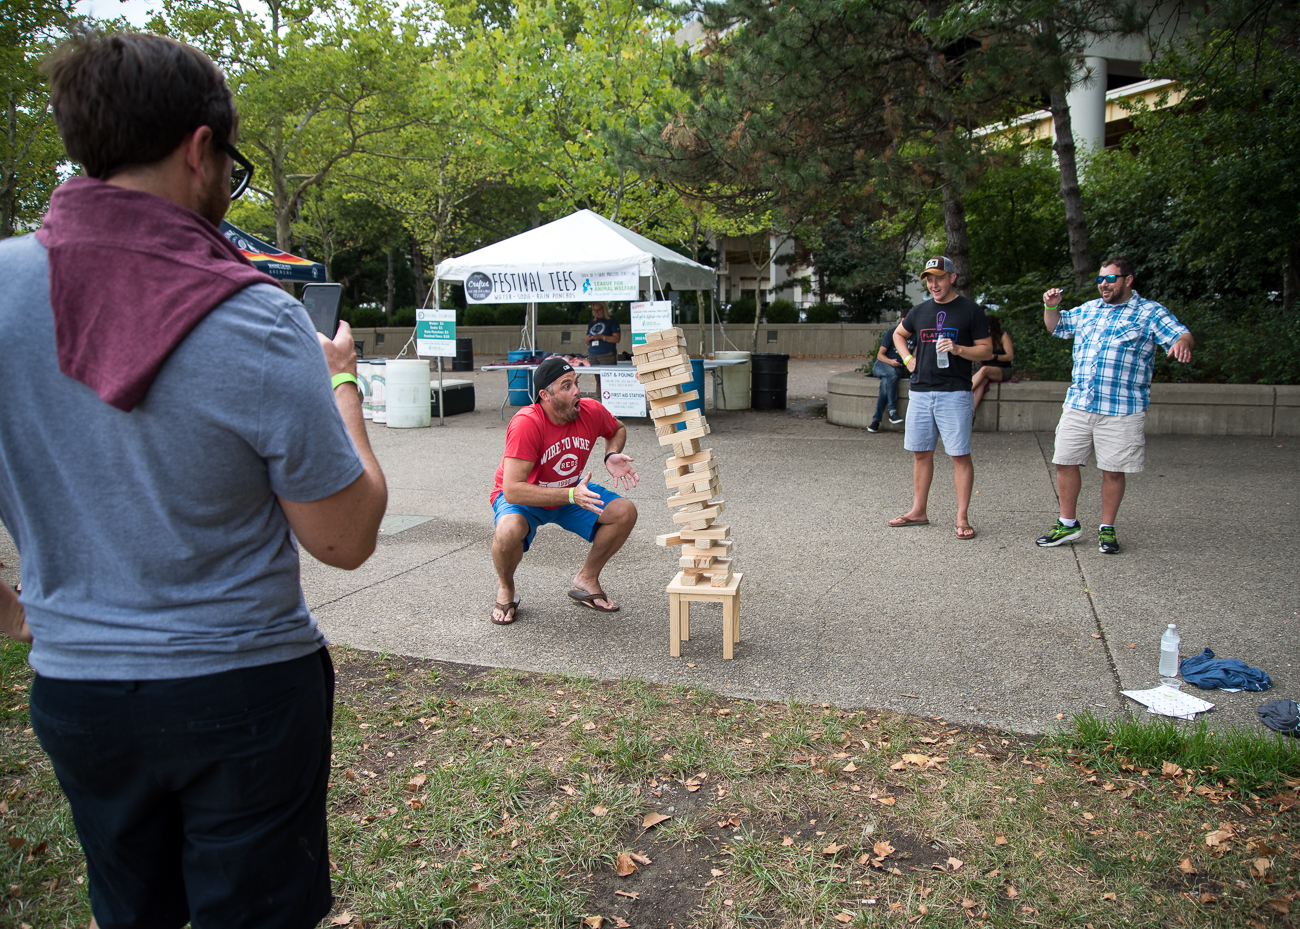 Friends watch as a very long game of Jenga ends / Image: Amie Santavicca // Published: 7.22.18